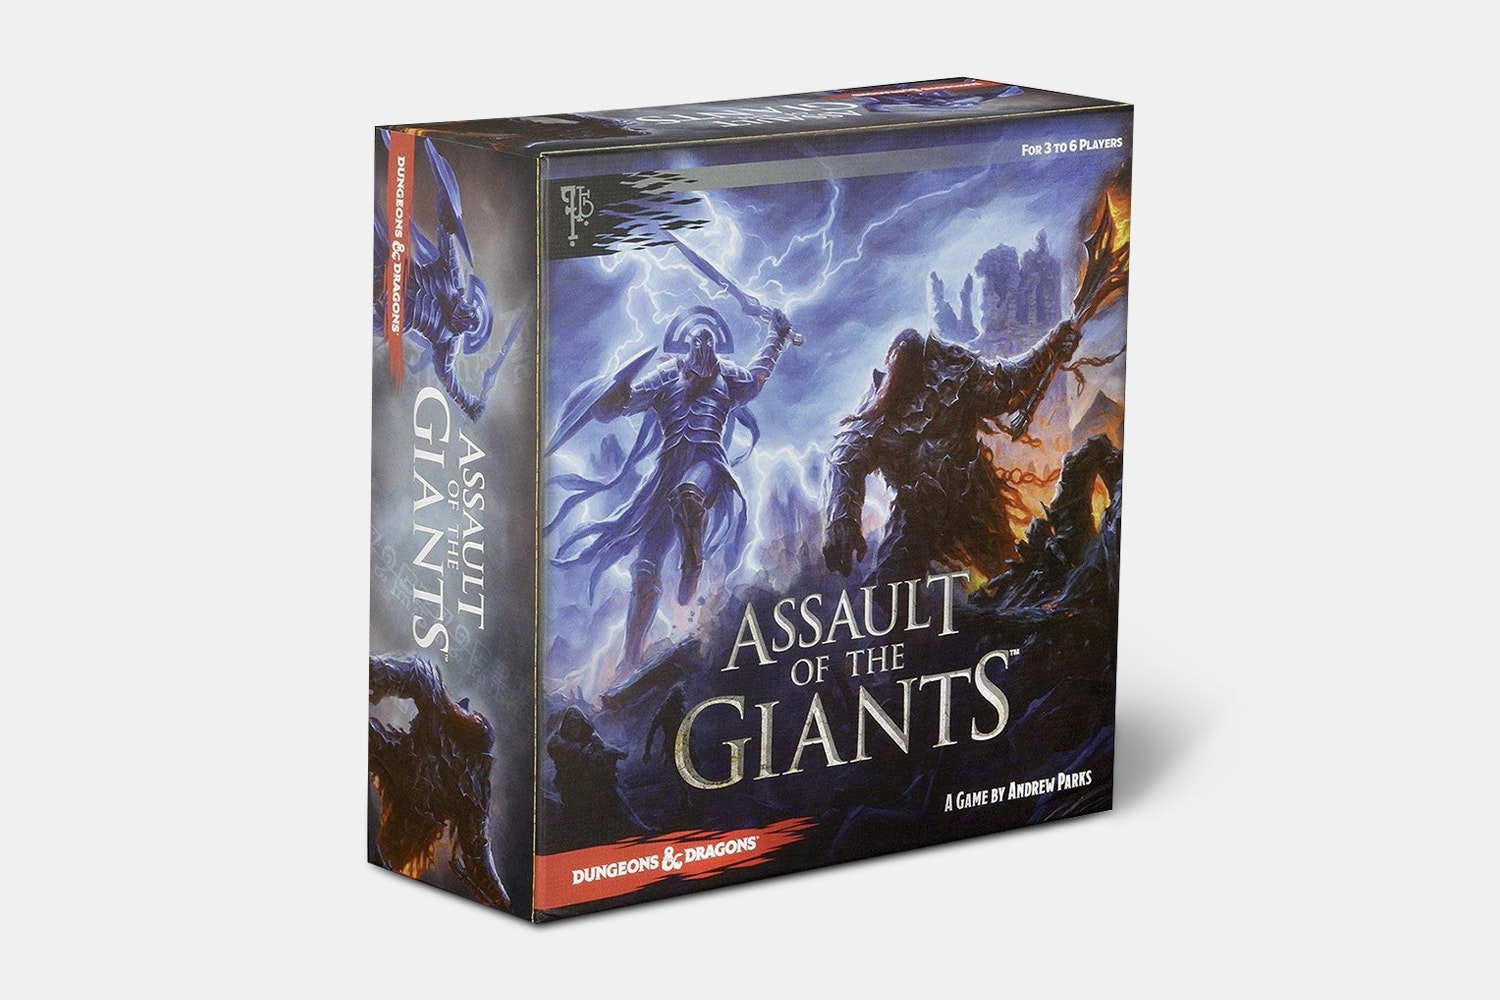 Assault of The Giants (+$5)